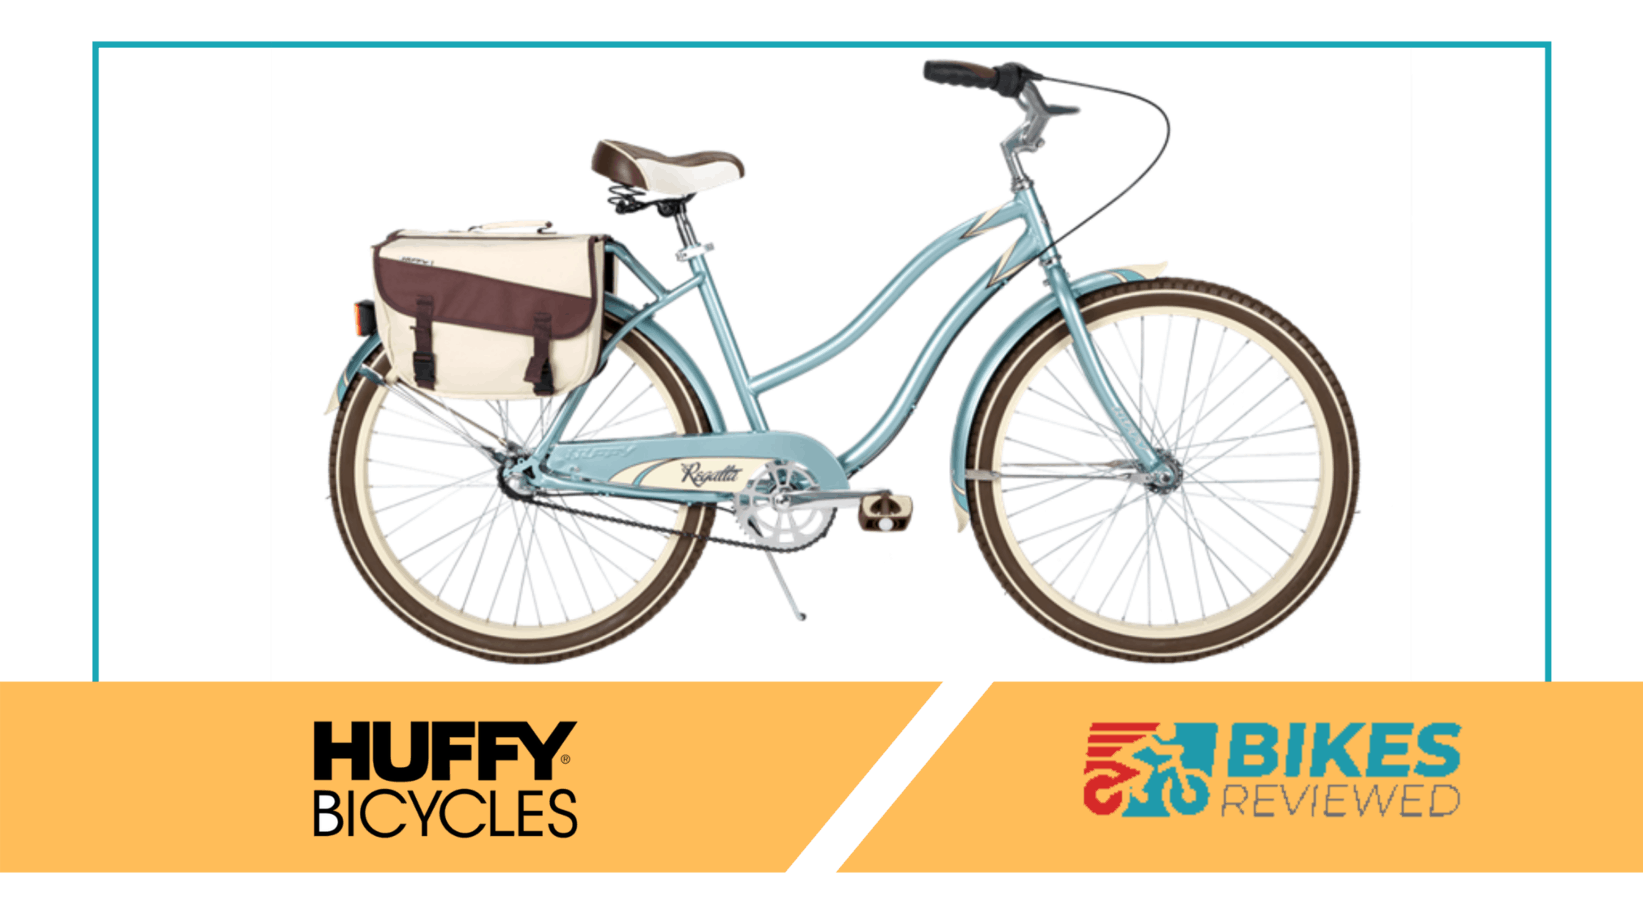 Huffy Bikes - Top Bicycle Brand for Women